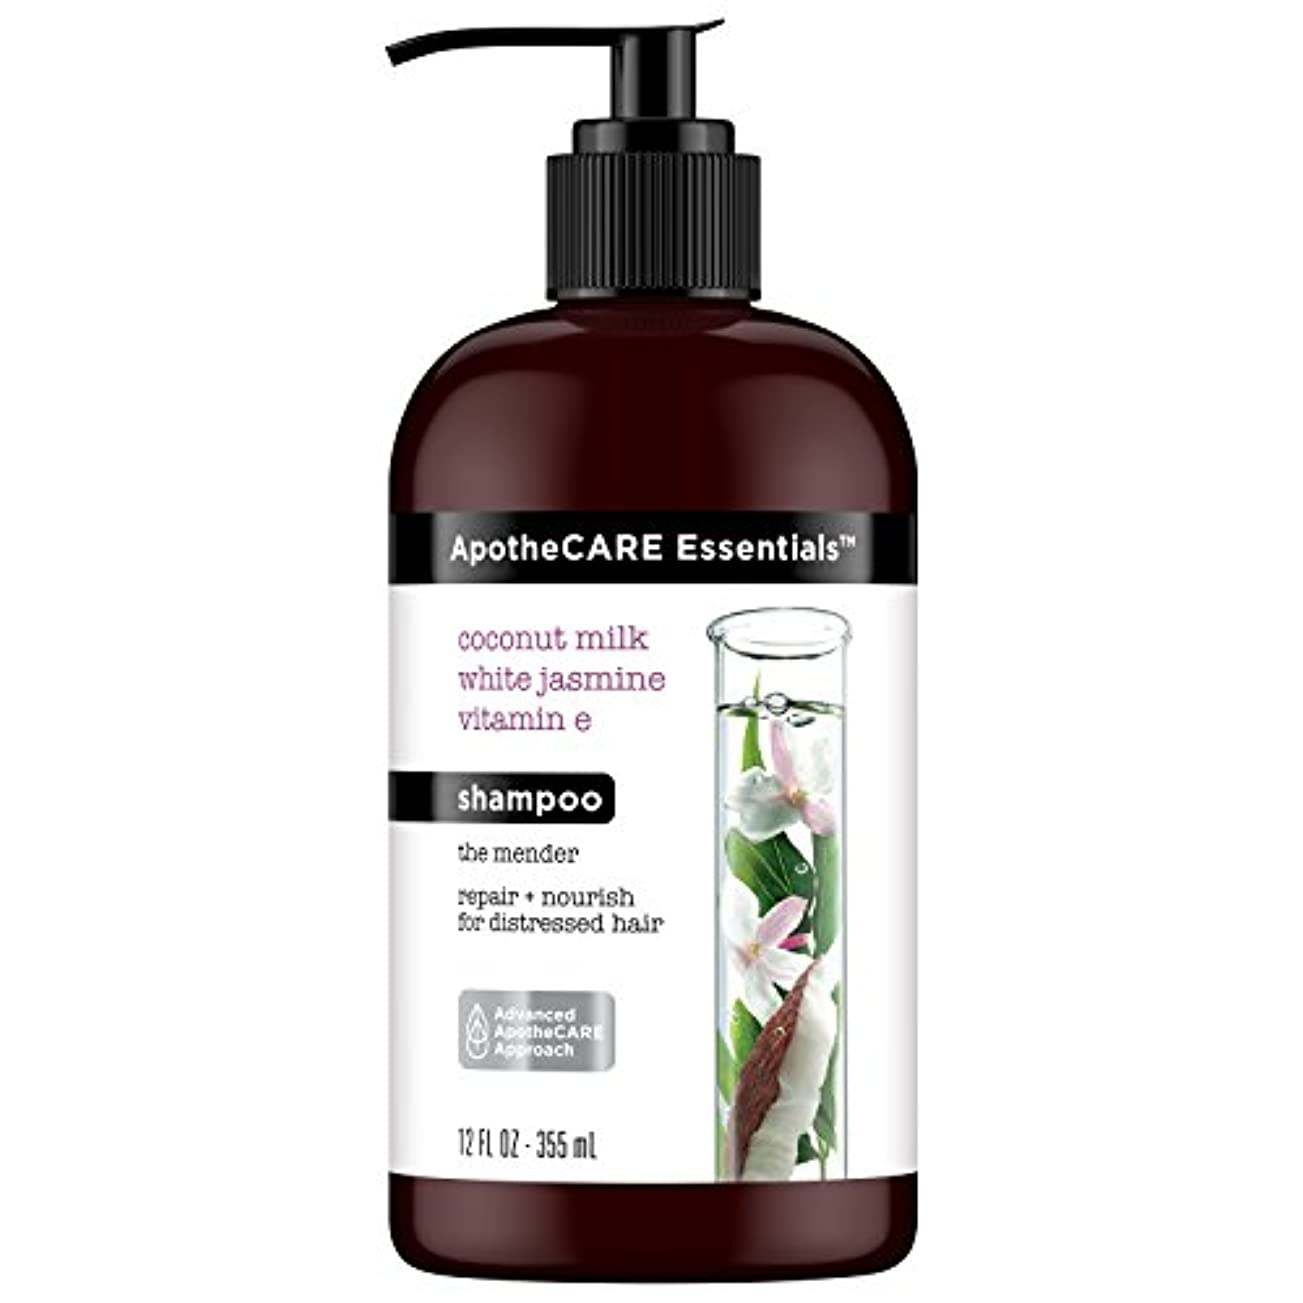 羊の四分円経由でApotheCARE Essentials The Mender Damaged Hair Repair Shampoo, Coconut Milk, White Jasmine, Vitamin E, 12 oz